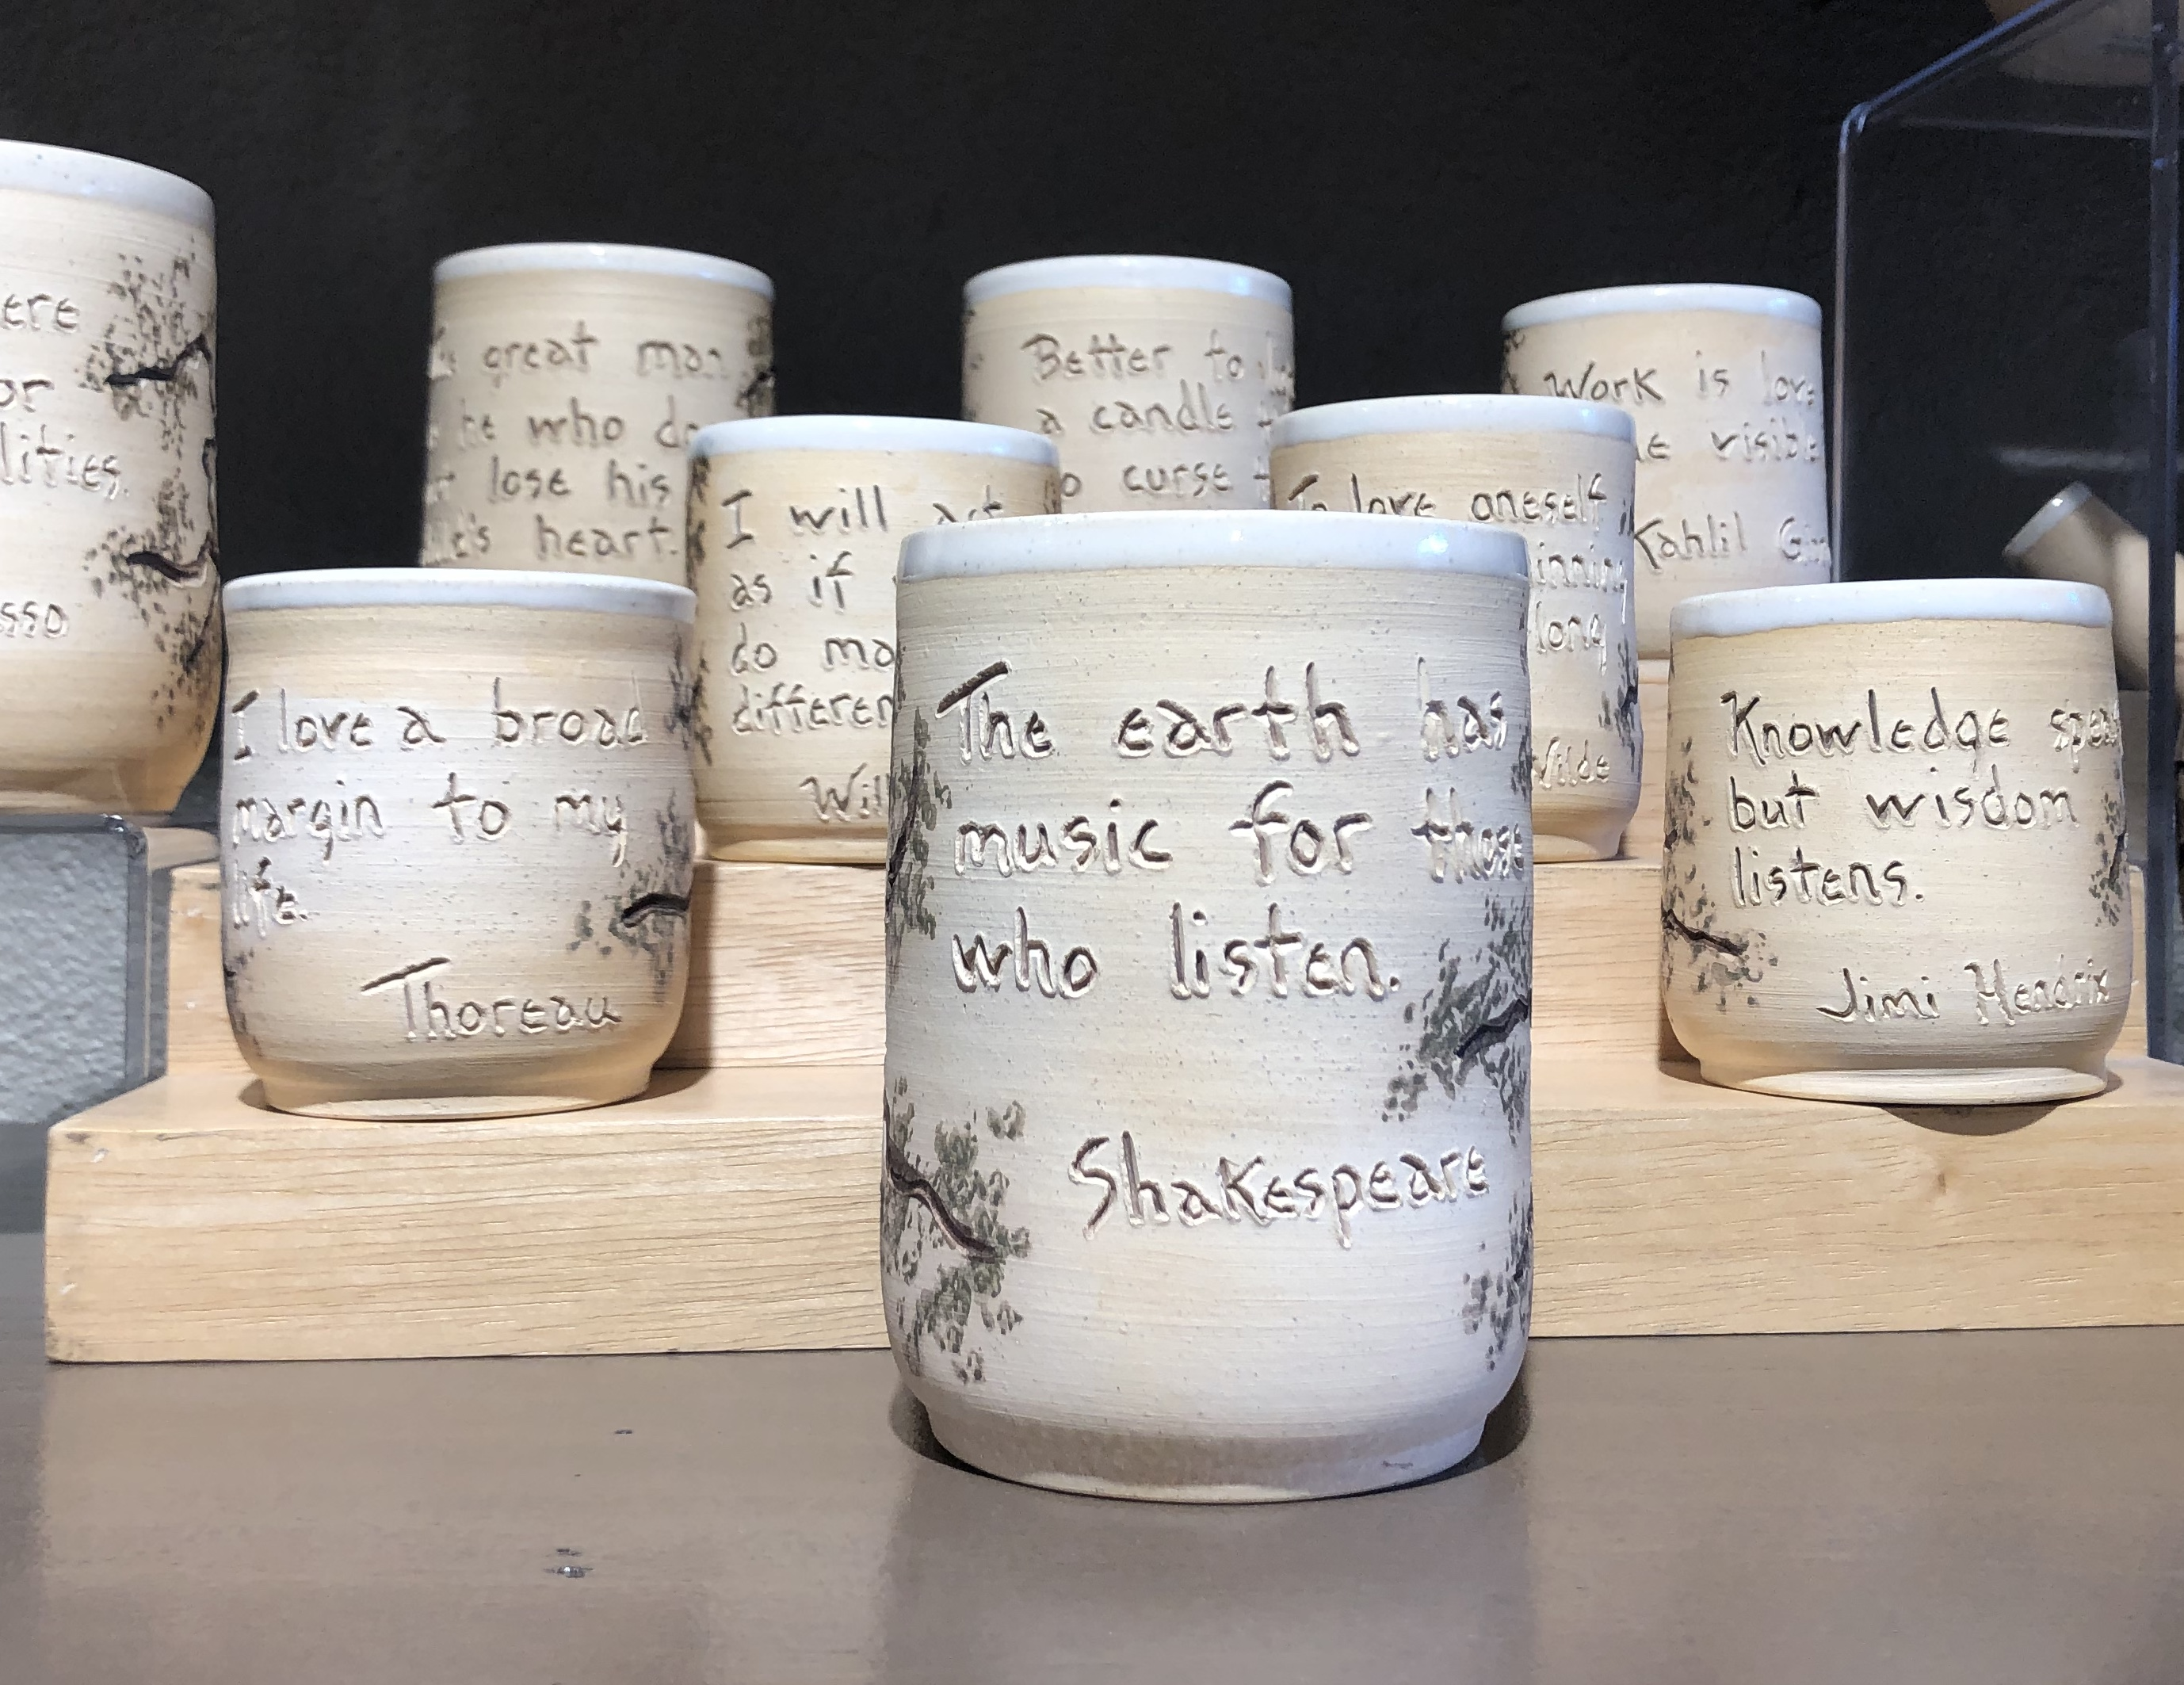 Etta Satter's handmade Quote Cups